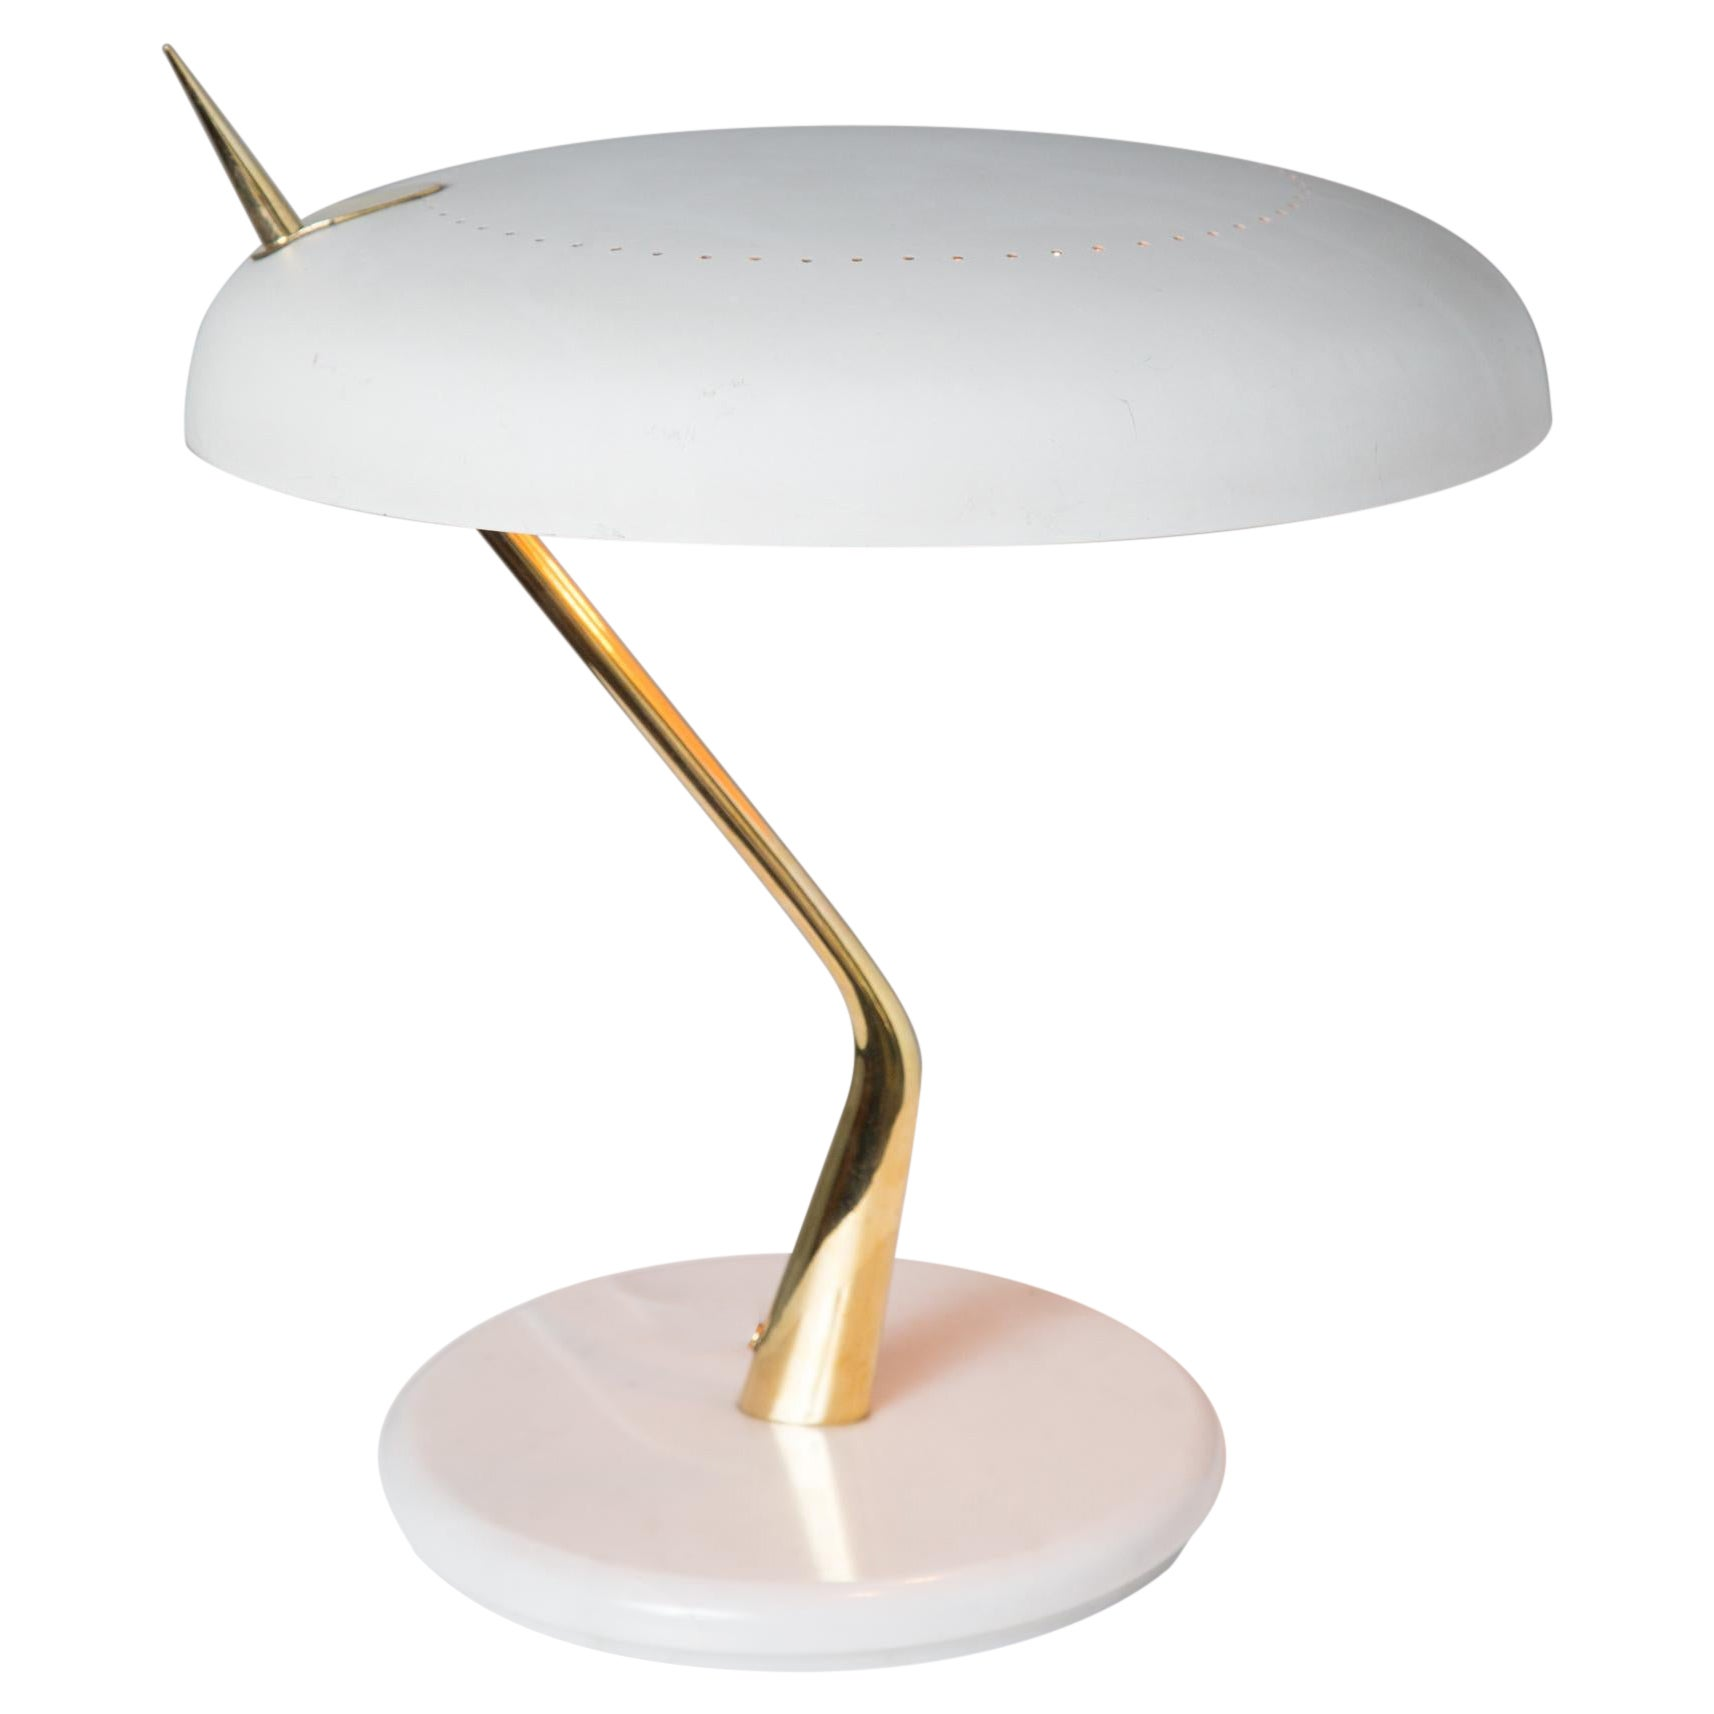 1950s Oscar Torlasco Mable and Metal Table Lamp for Lumen Milano